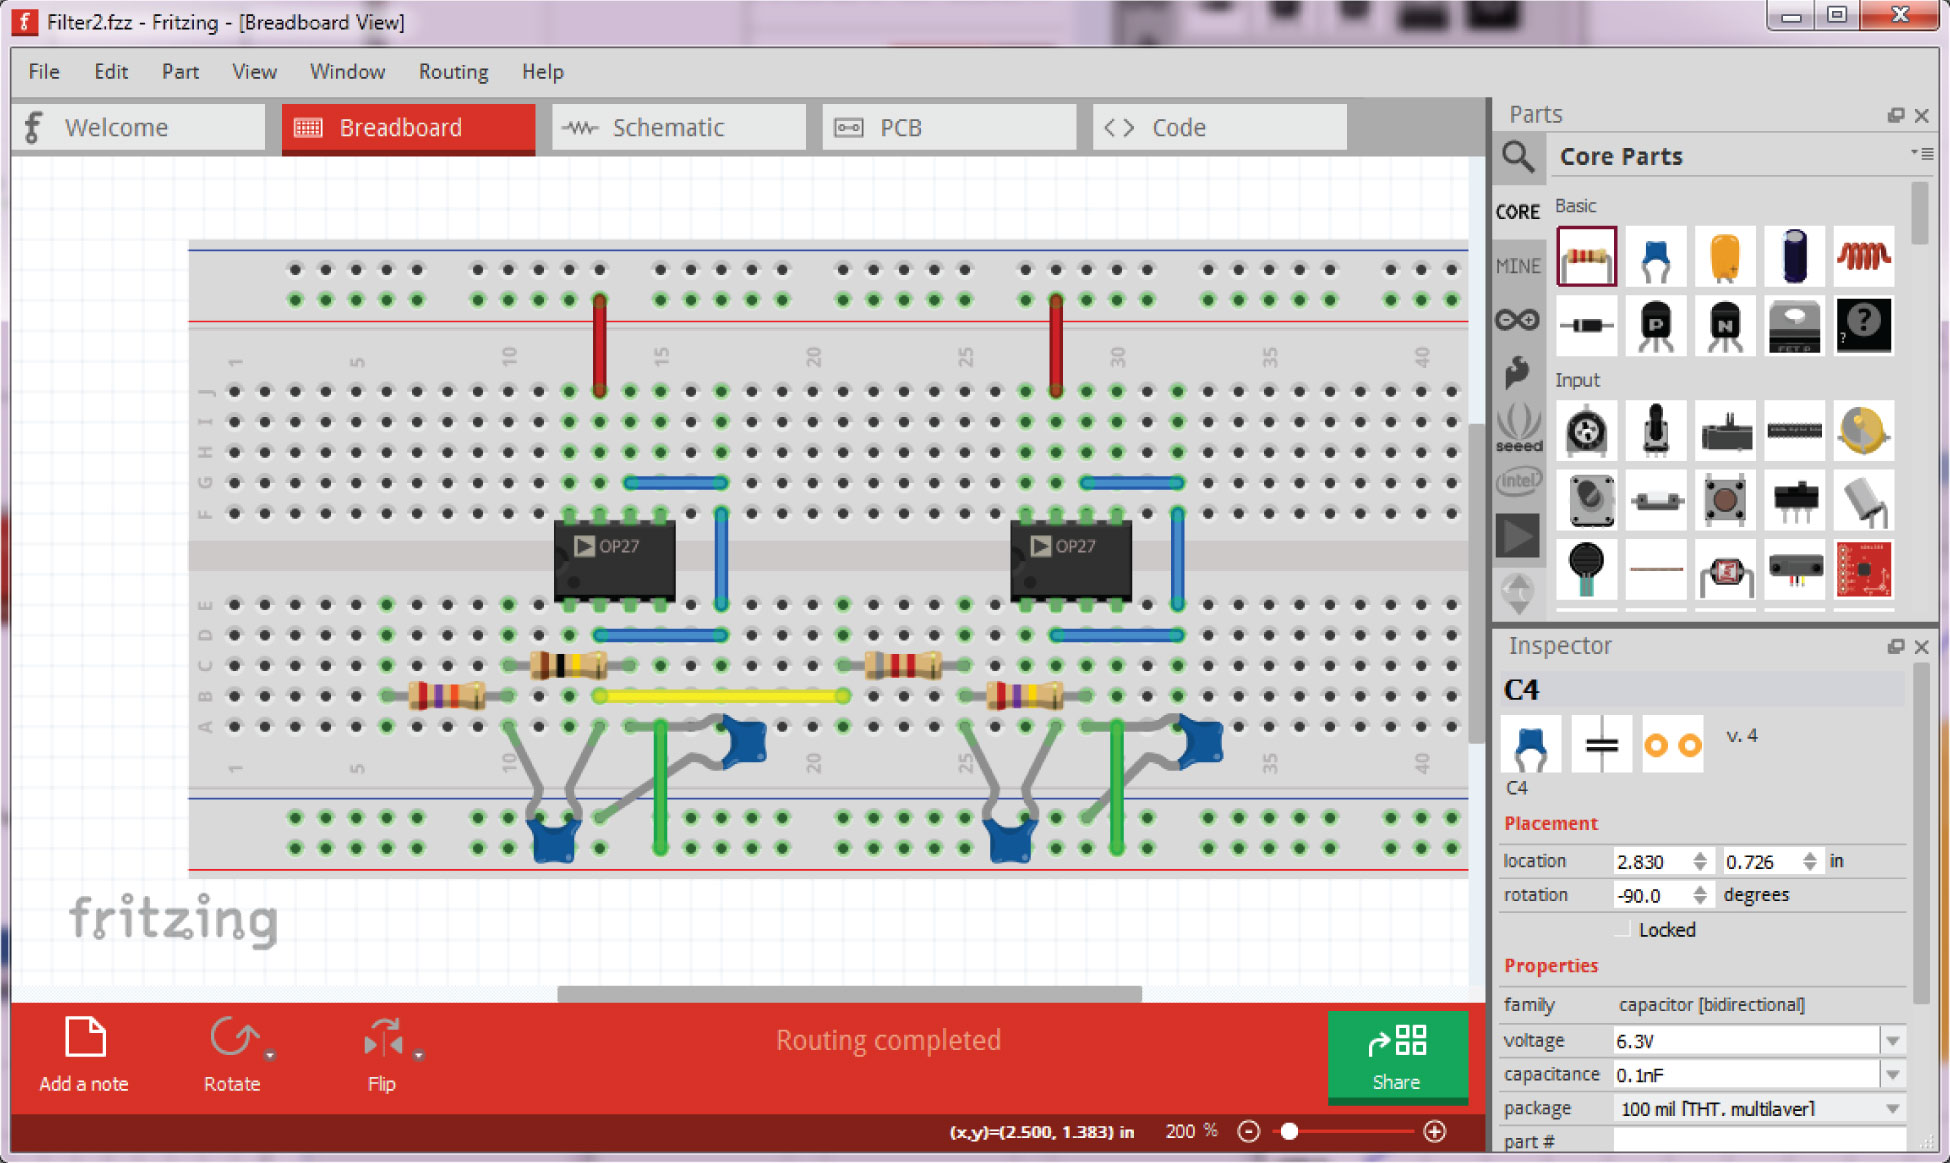 convert circuit diagram to breadboard 3 way solenoid valve the schematic a basic element of design analog fritzing tool provides view